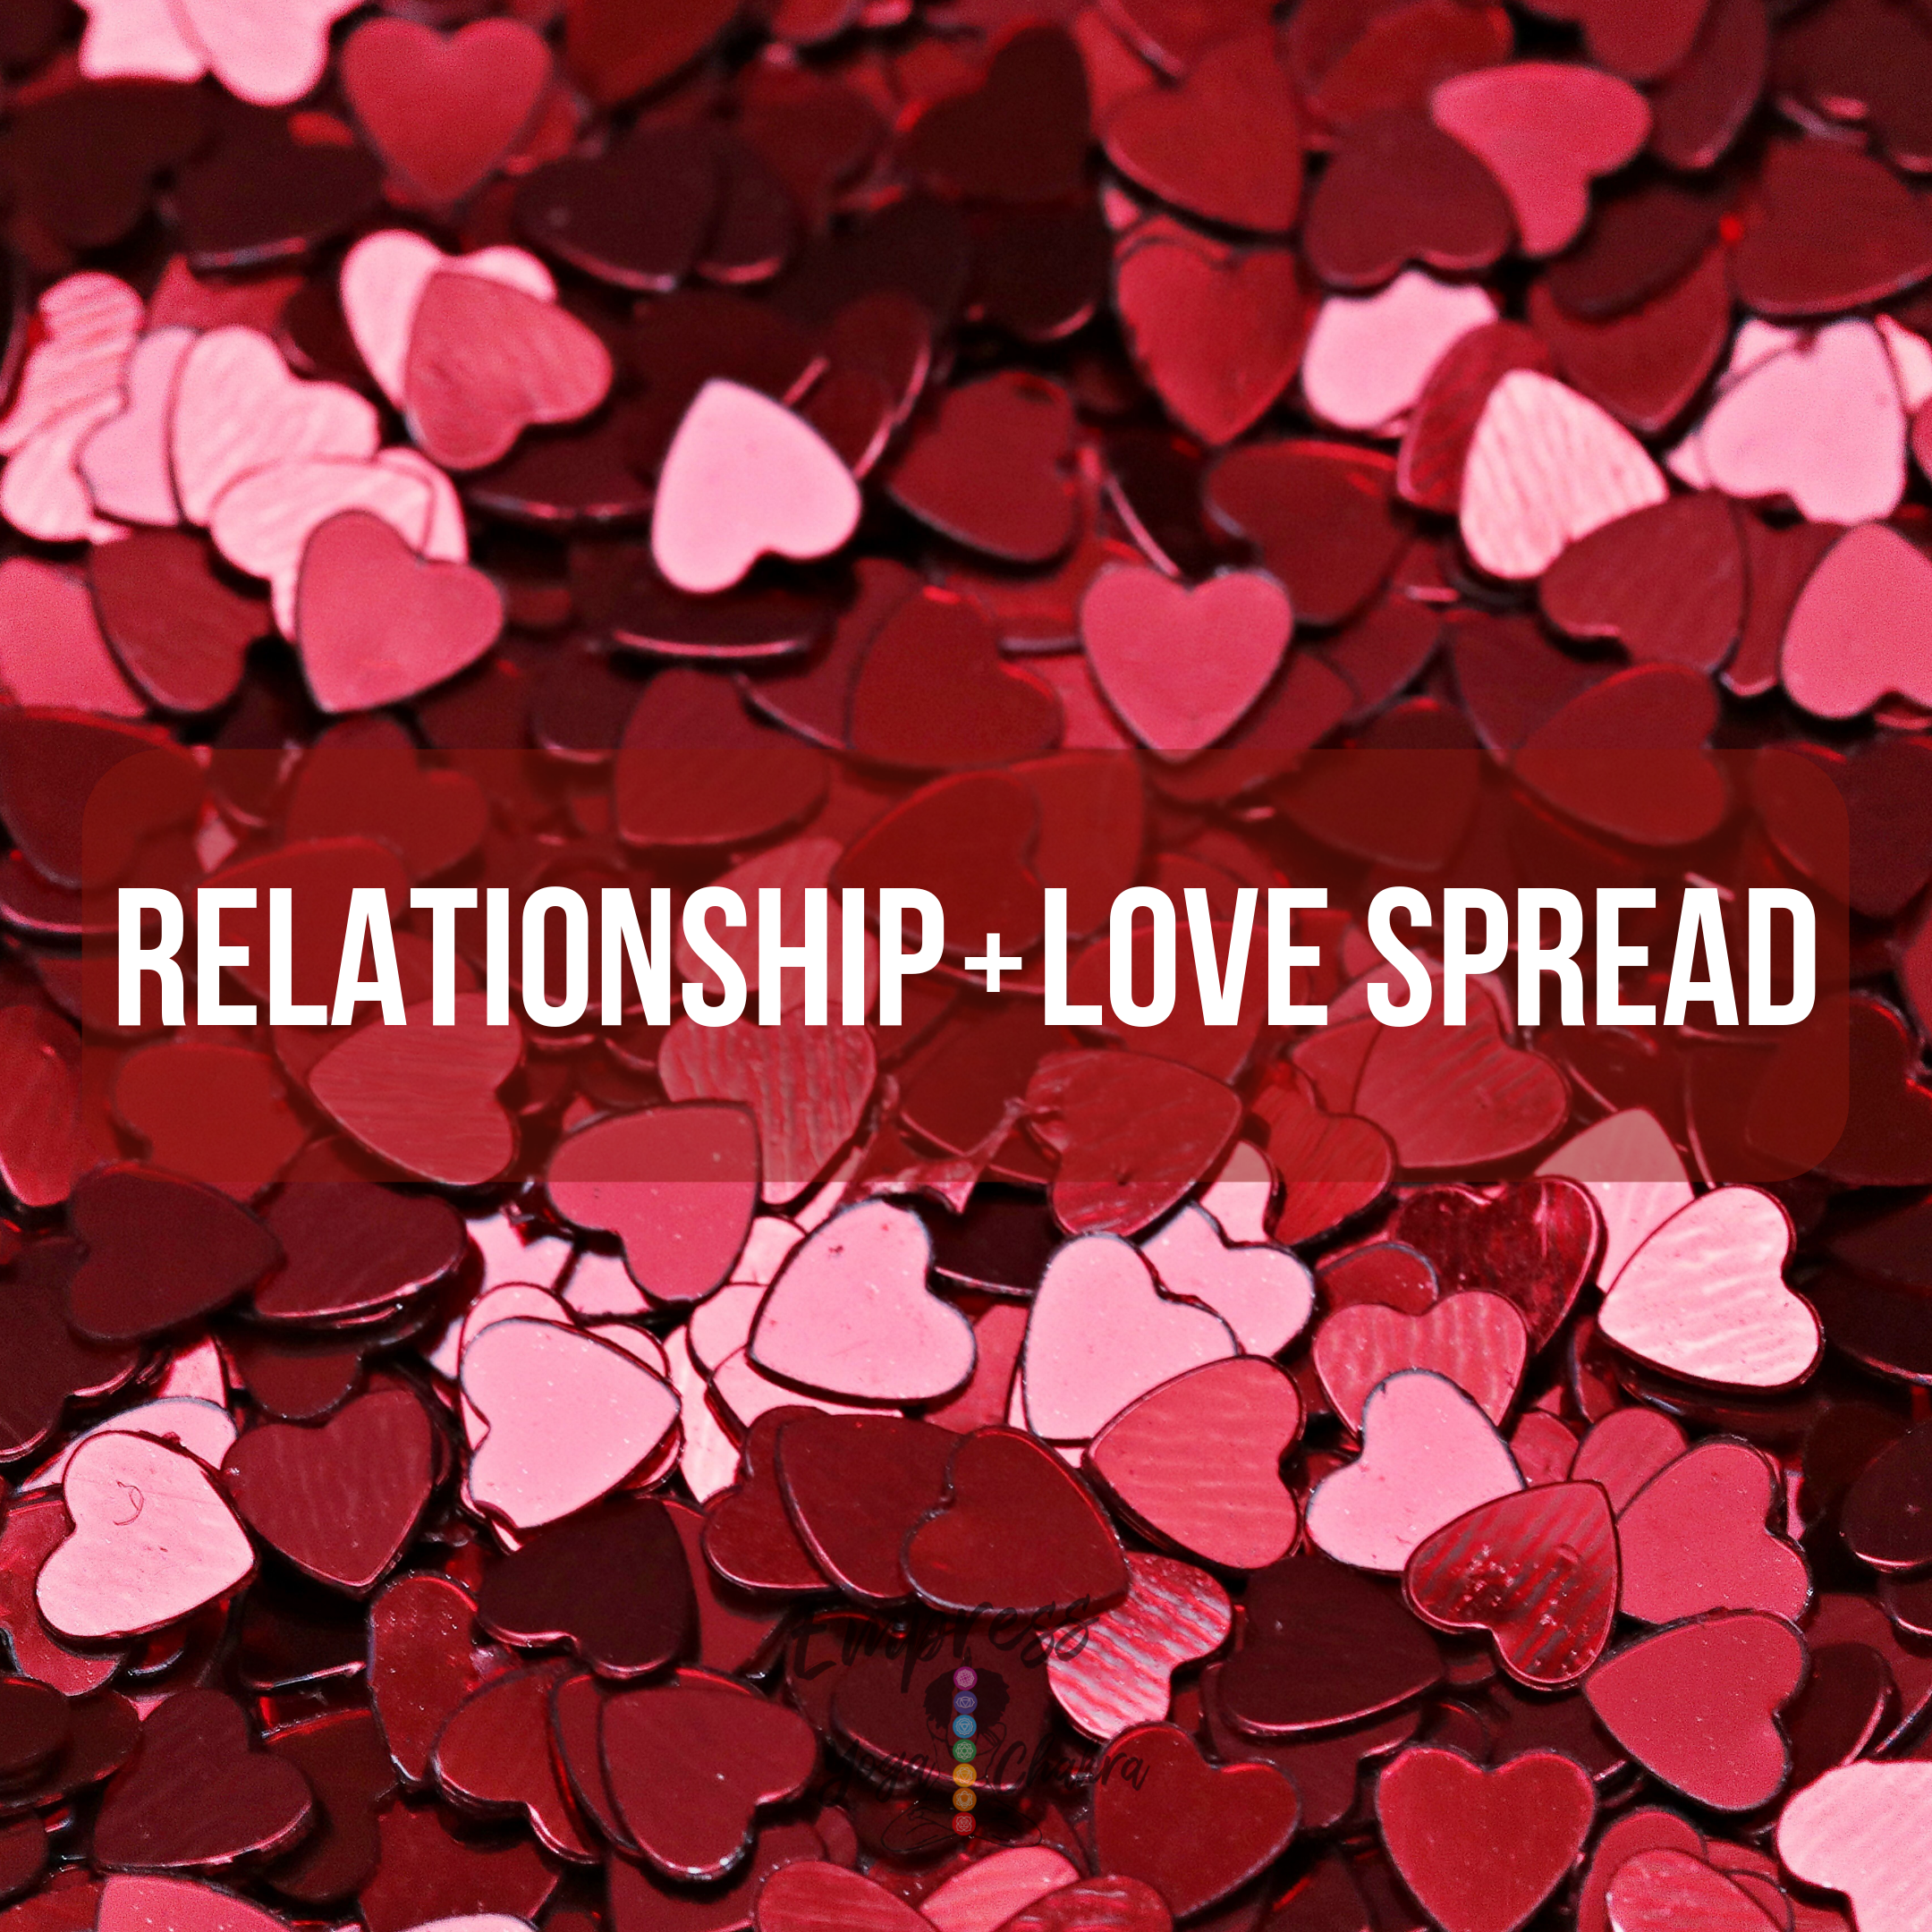 Relationship & Love Spread